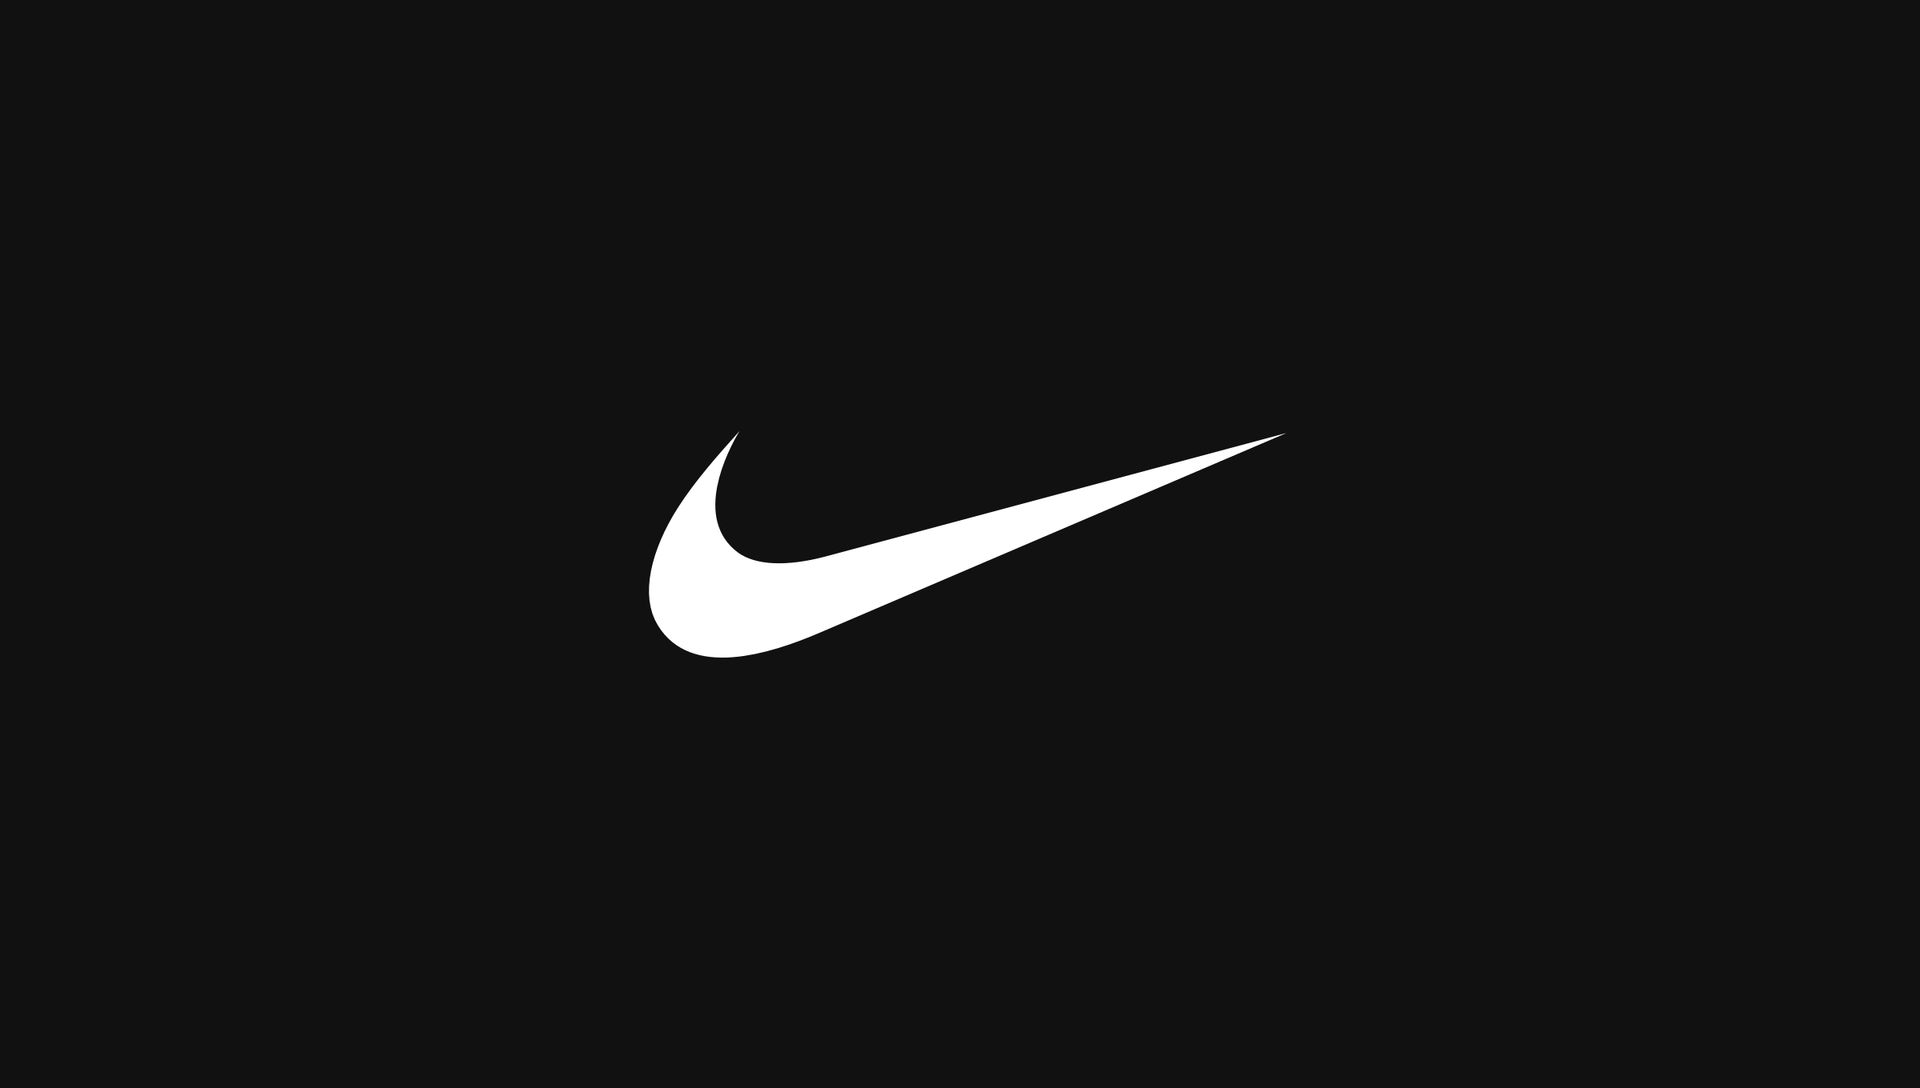 Insignia Dirección Fuera  Nike. Just Do It. Nike.com